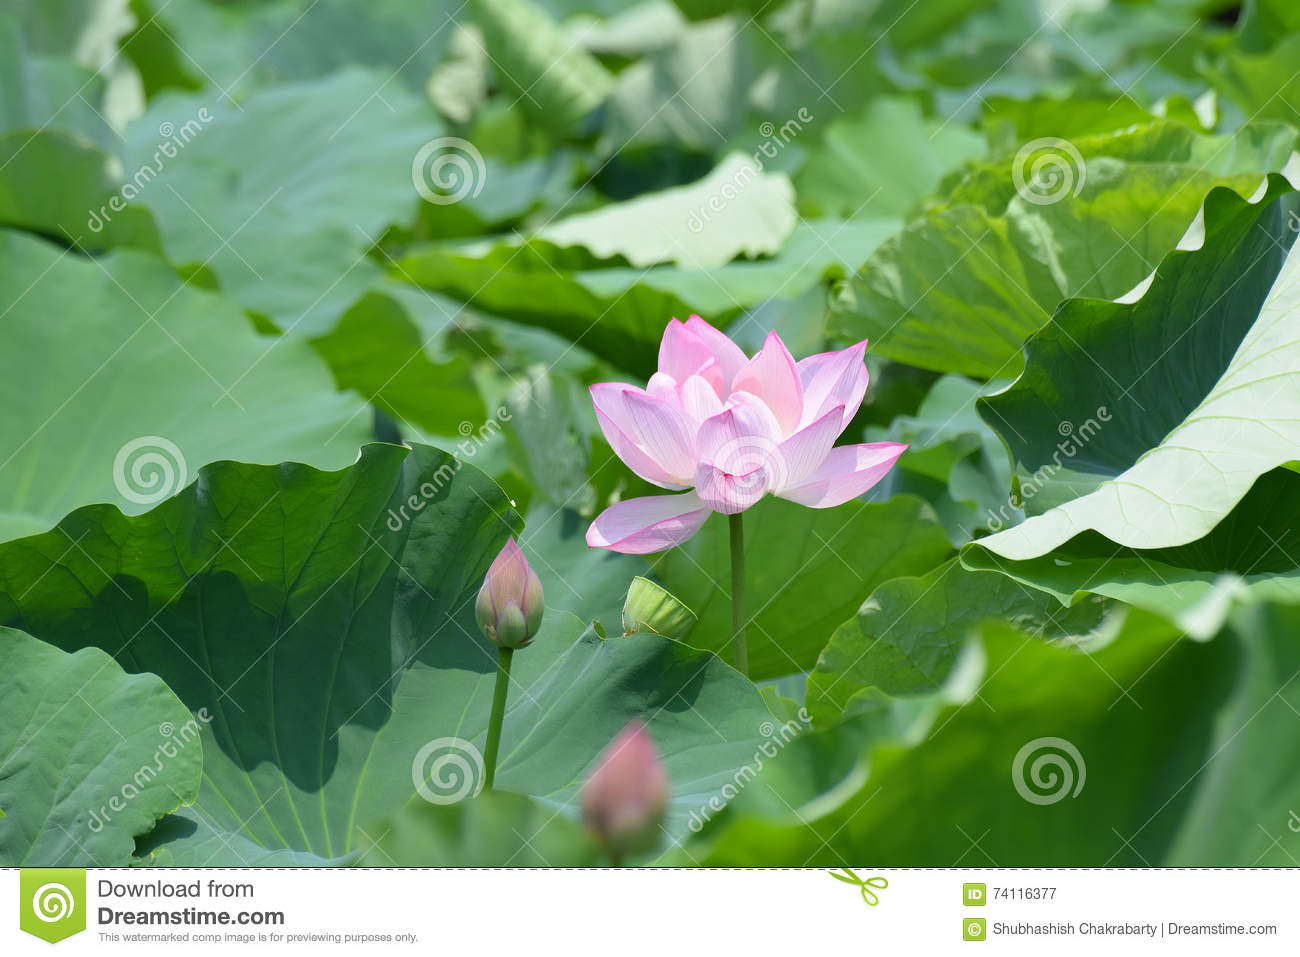 Lotus flower symbol of buddhism and religion stock image image of download lotus flower symbol of buddhism and religion stock image image of concepts full mightylinksfo